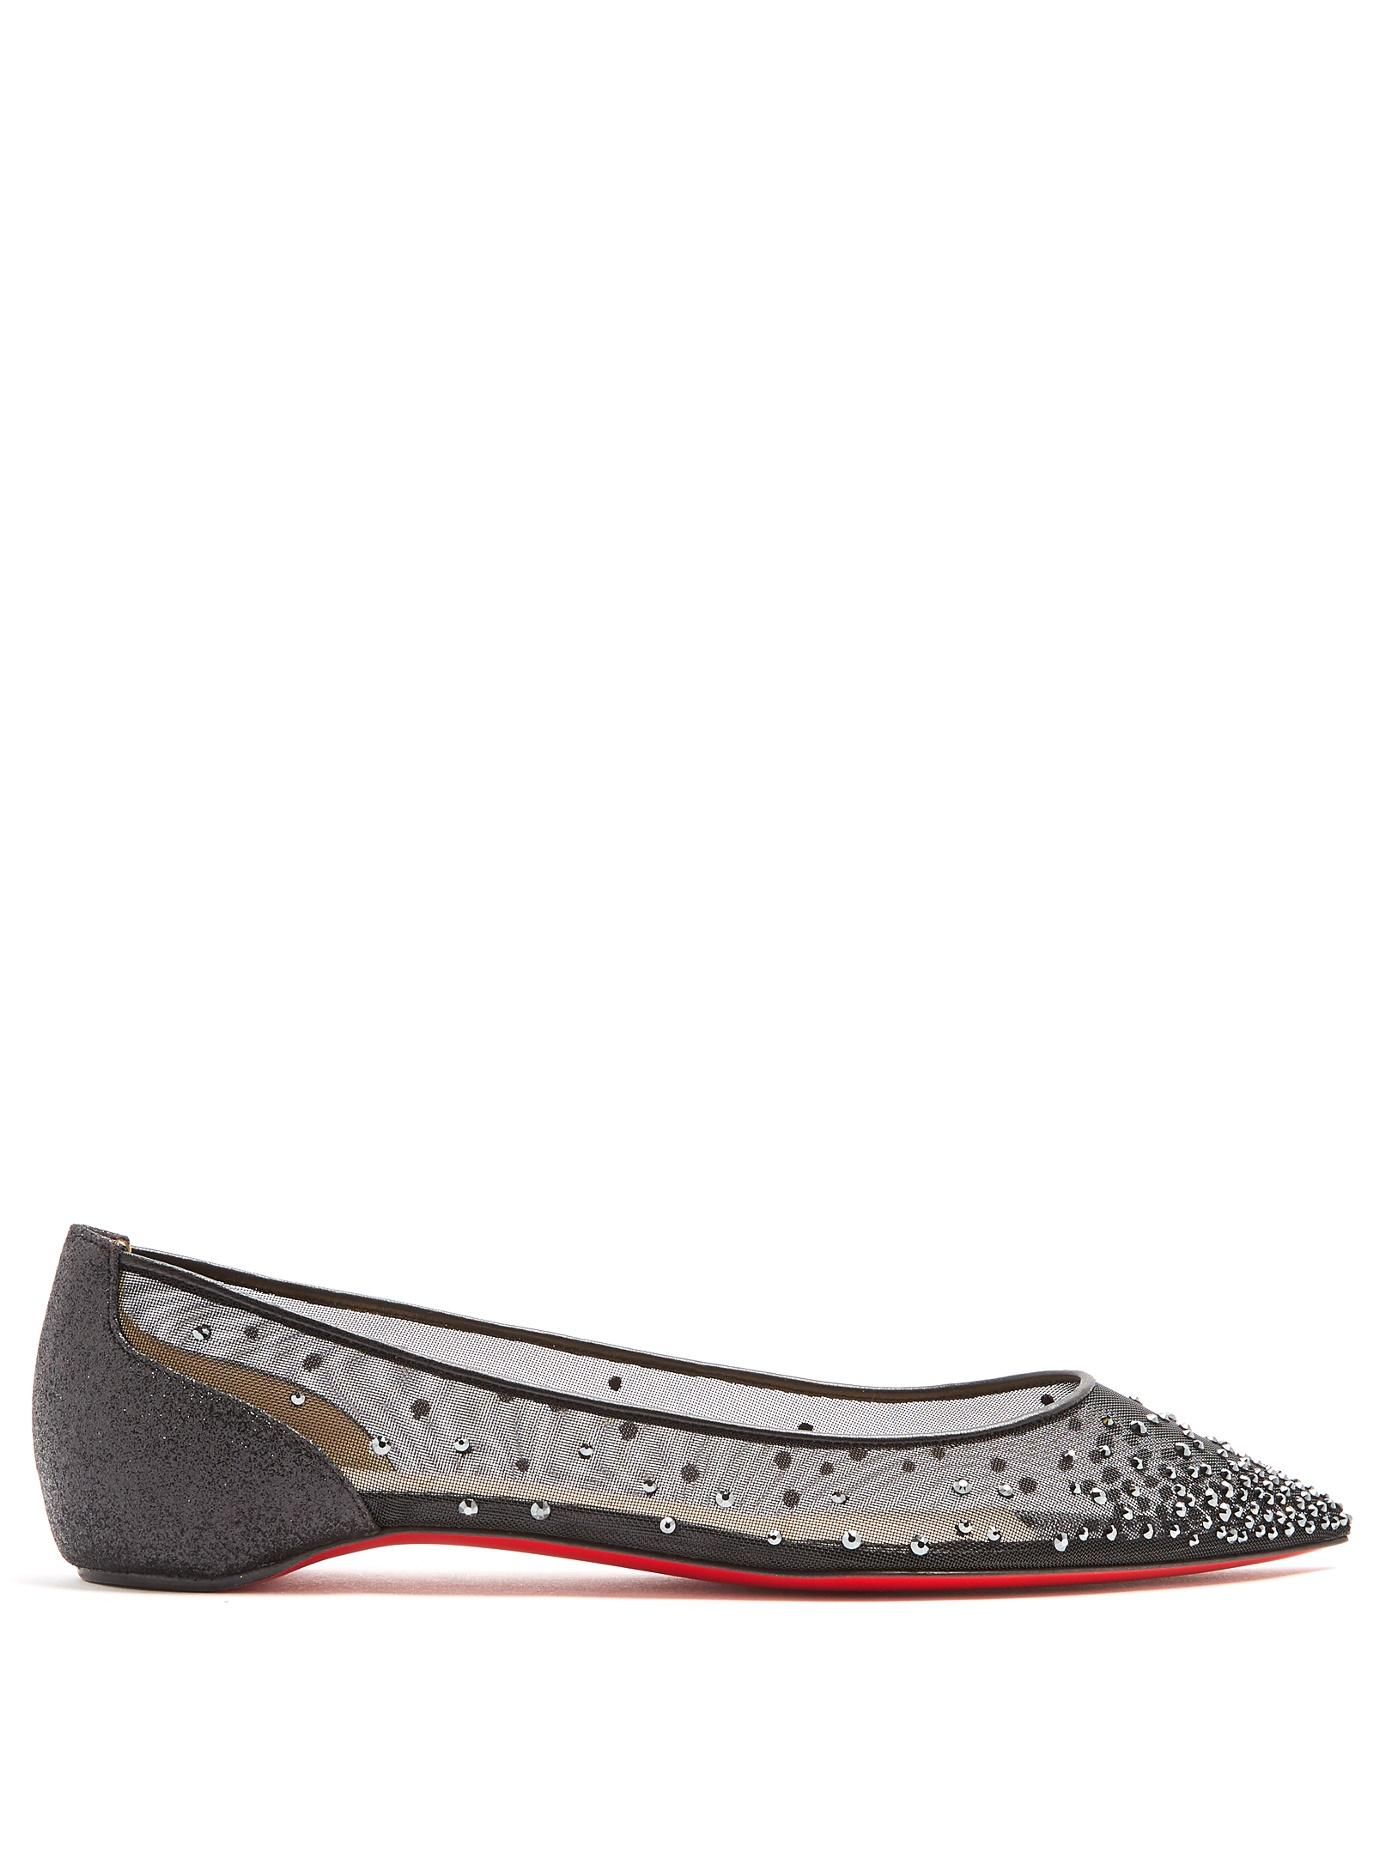 Christian Louboutin Follies Strass Crystal Embellished Flat In Black